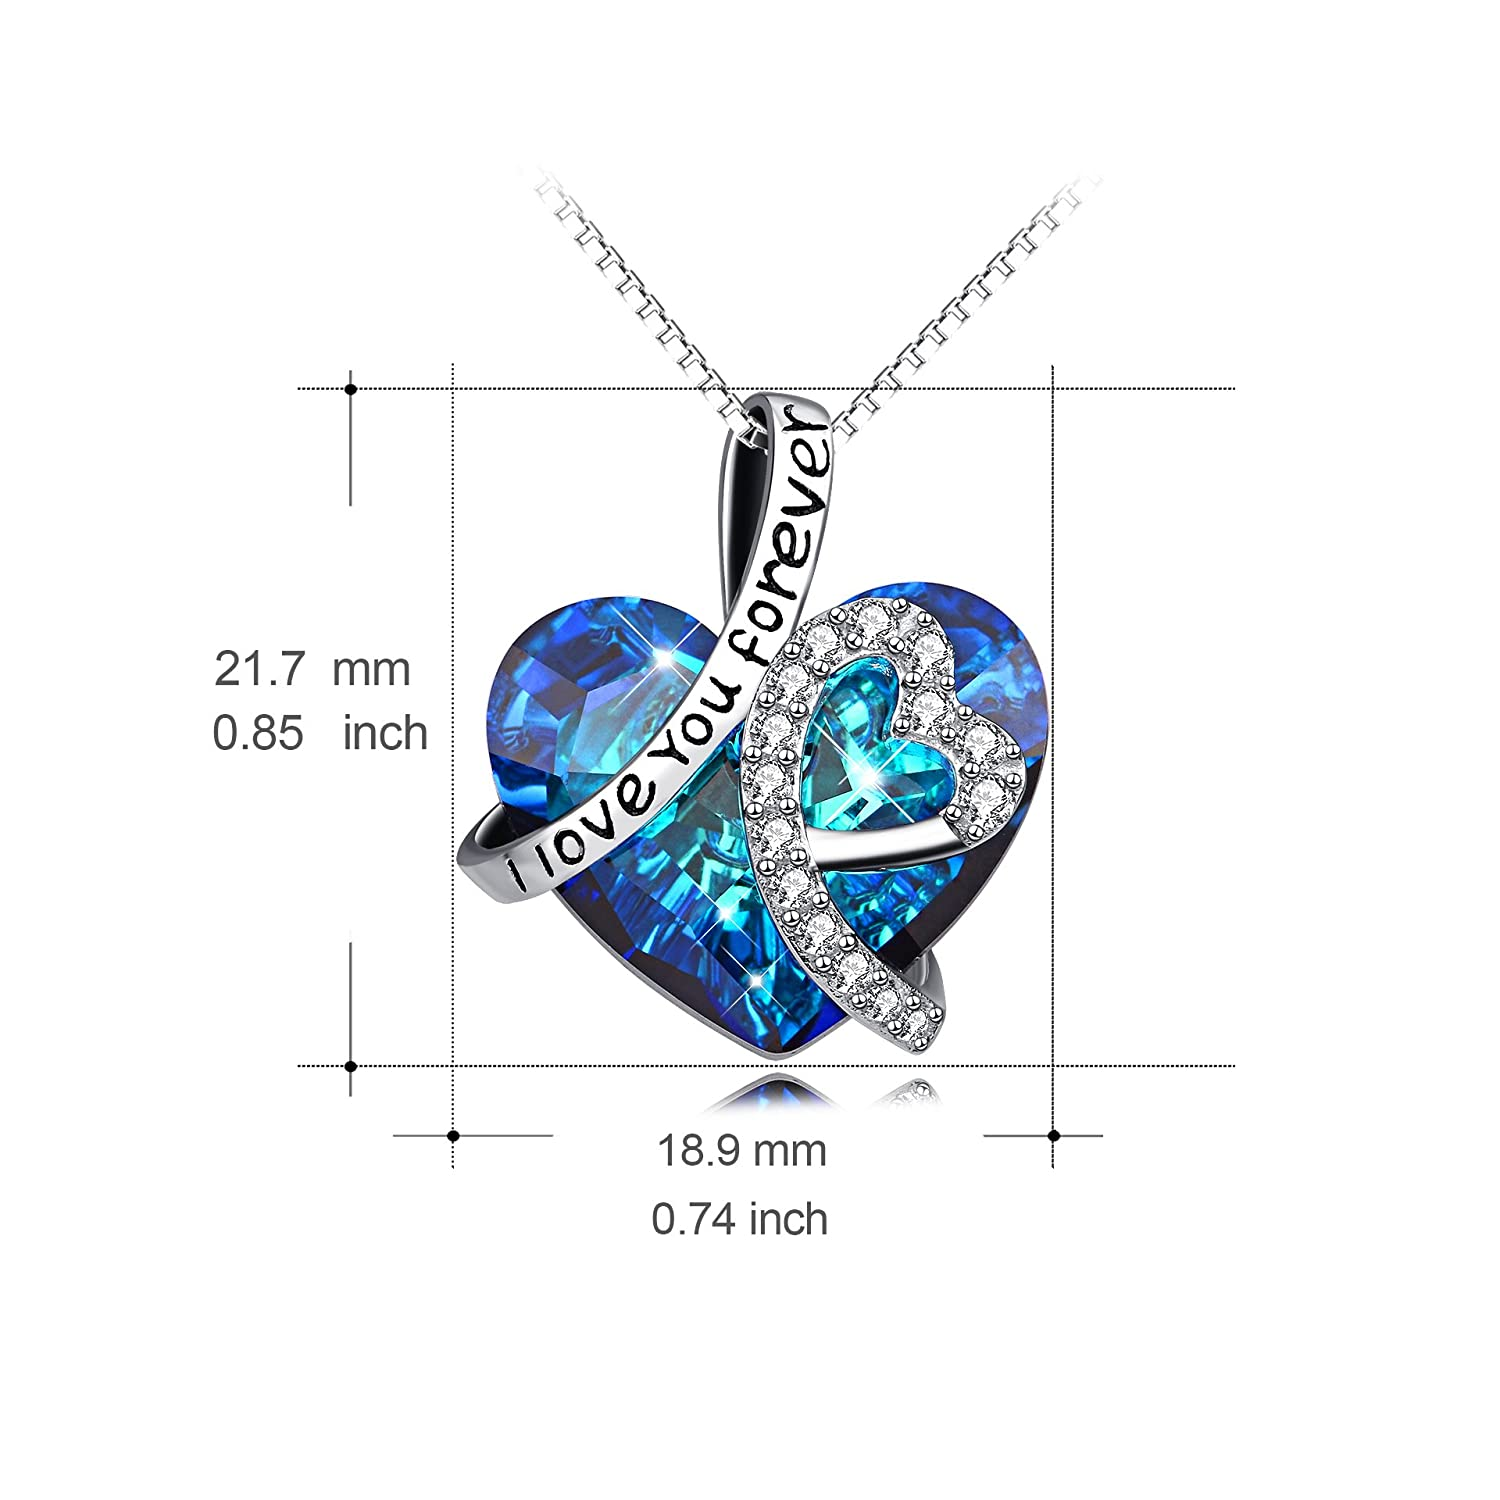 e024488bf Amazon.com: Heart Necklace 925 Sterling Silver I Love You Forever Pendant  Necklace with Blue Swarovski Crystals Jewelry for Women Anniversary  Birthday Gifts ...